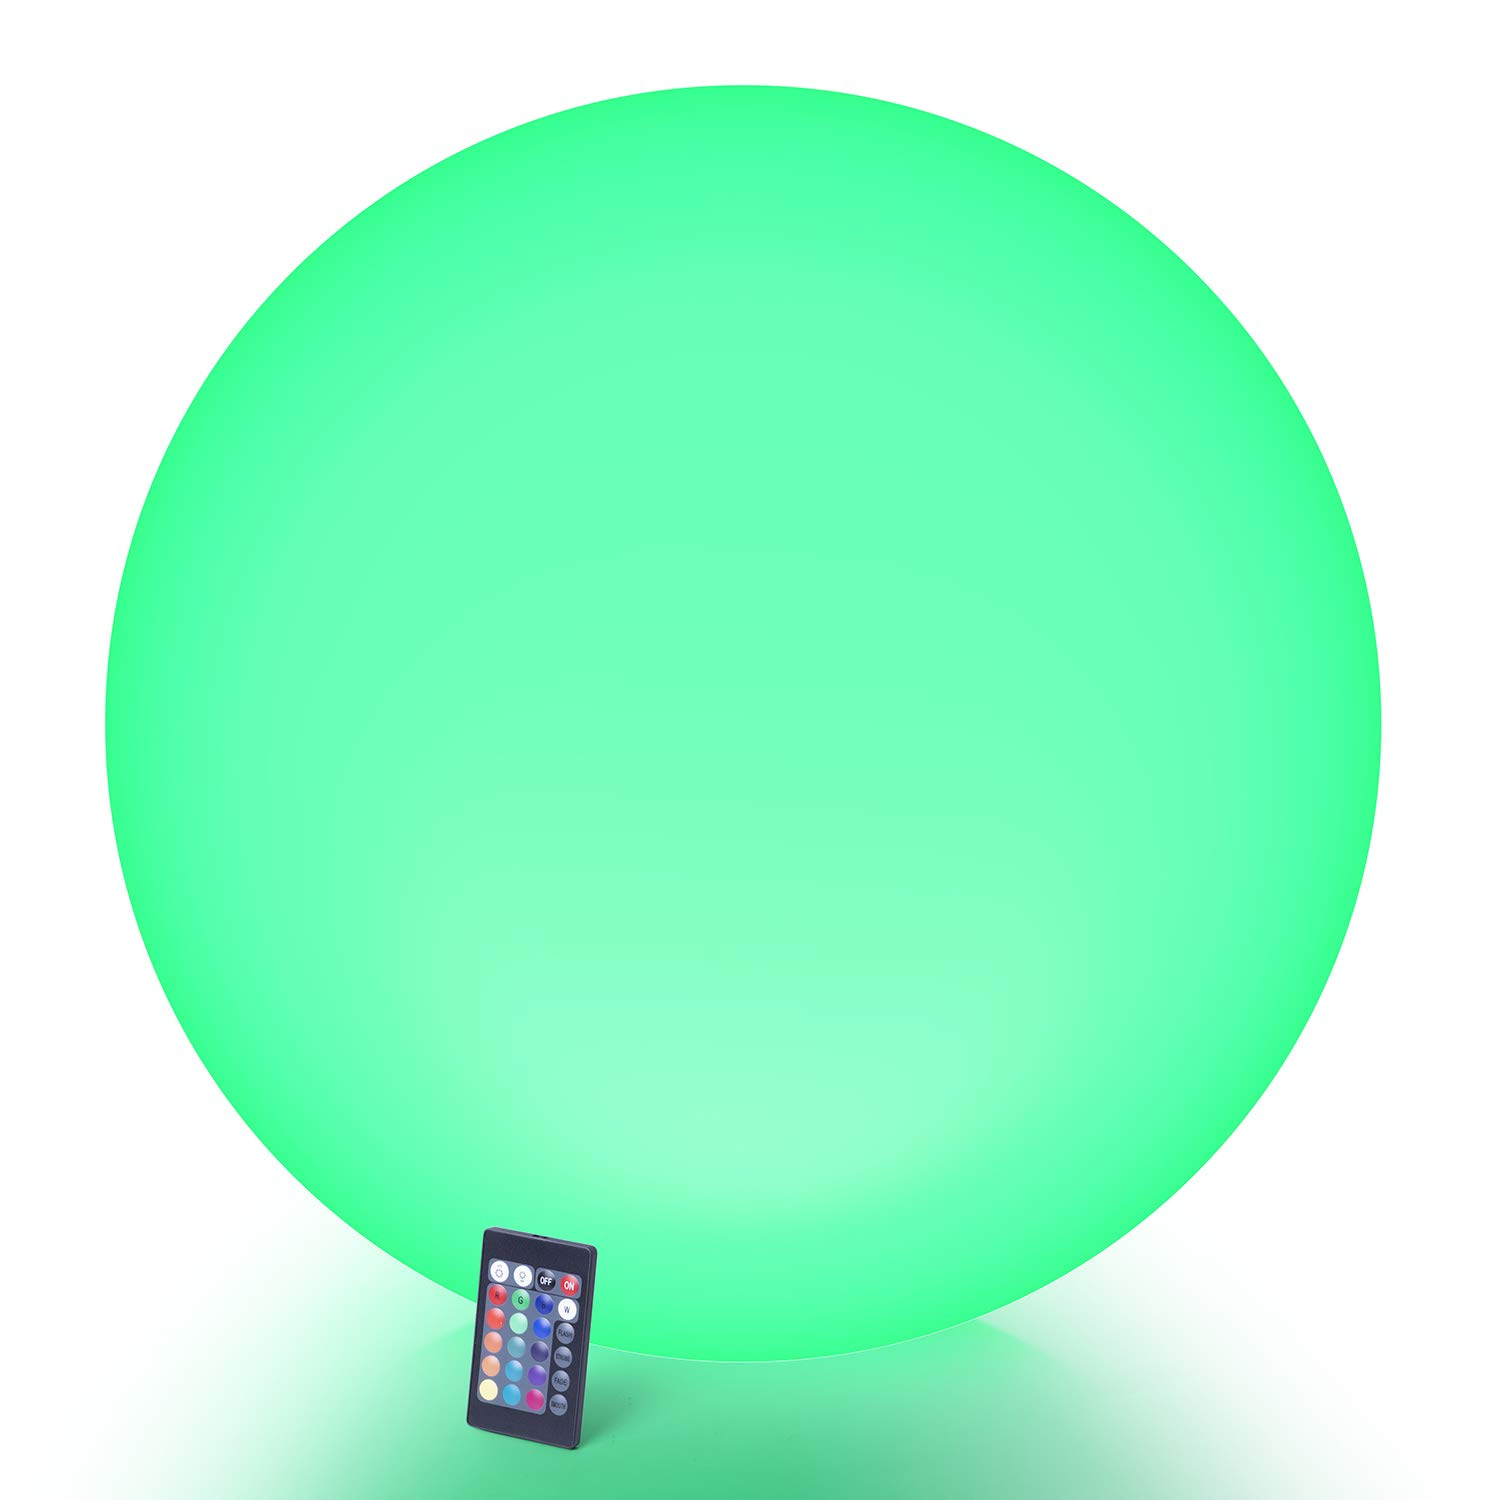 LOFTEK LED Dimmable Large Floating Pool Lights Ball, 24-inch Cordless Light Up Ball with Remote, 16 RGB Colors & 4 Lighting Modes, Rechargeable and Waterproof, Perfect for Pool, Garden, Party Decor